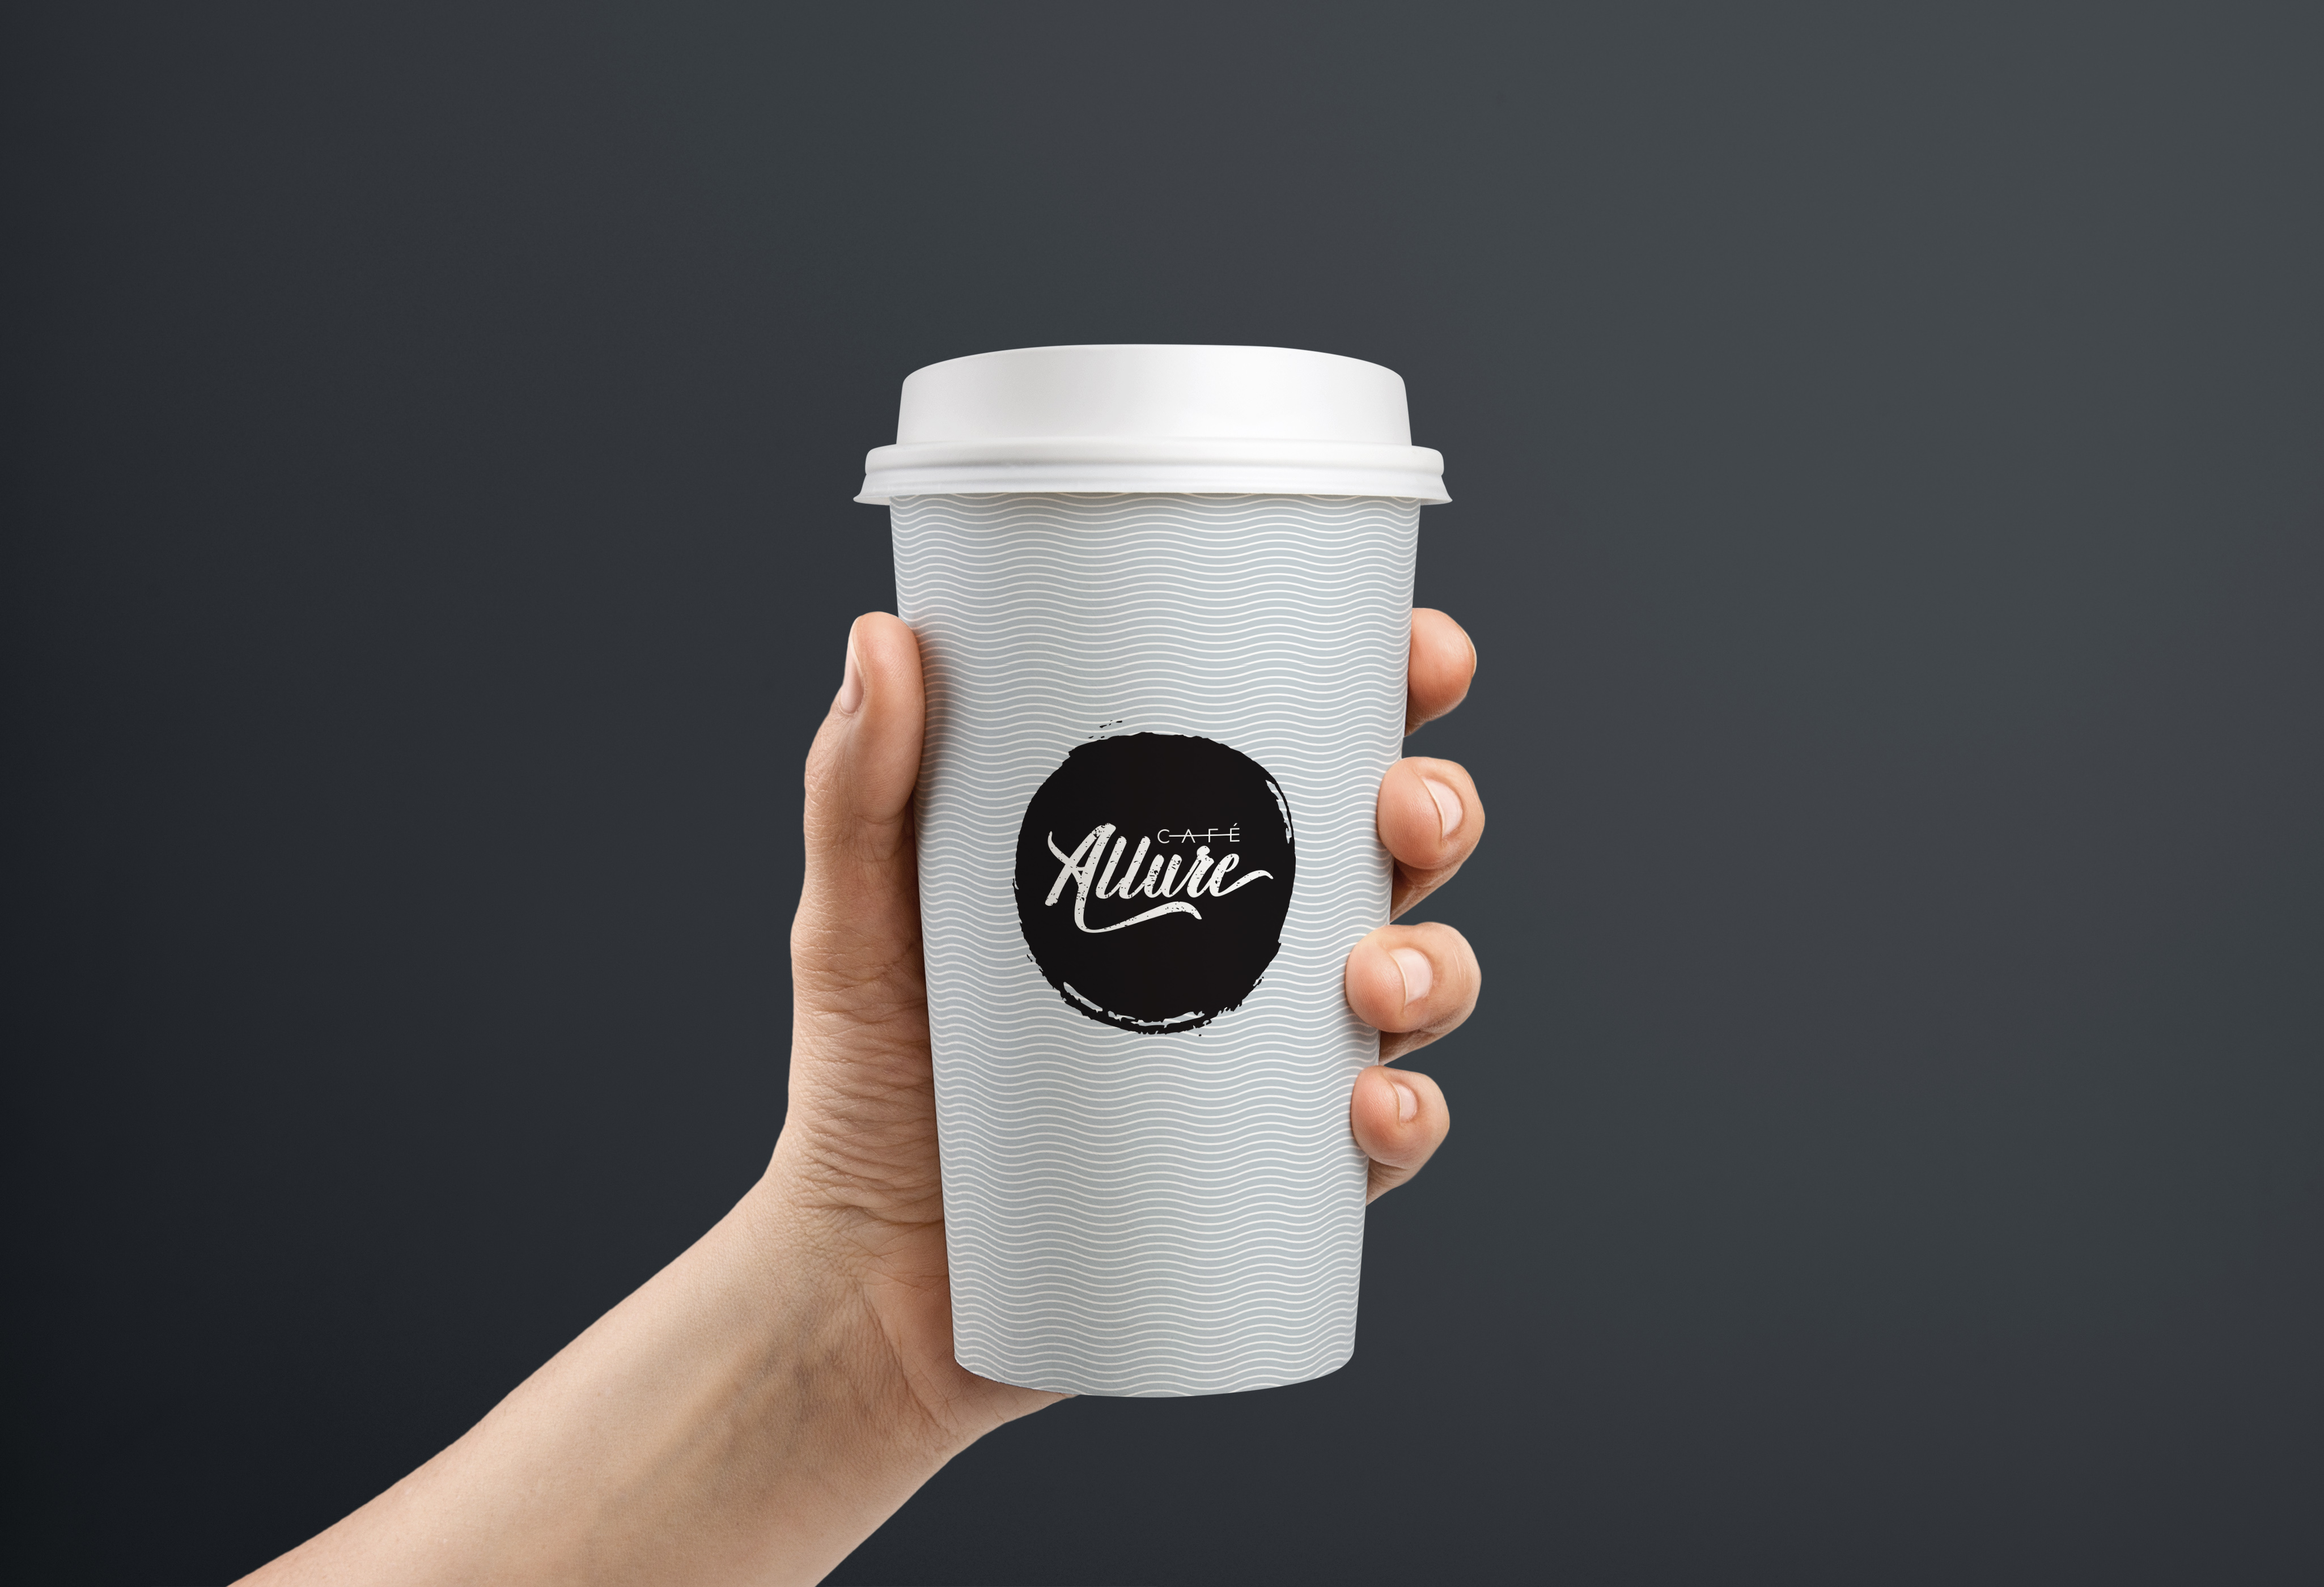 cafe alllure cup